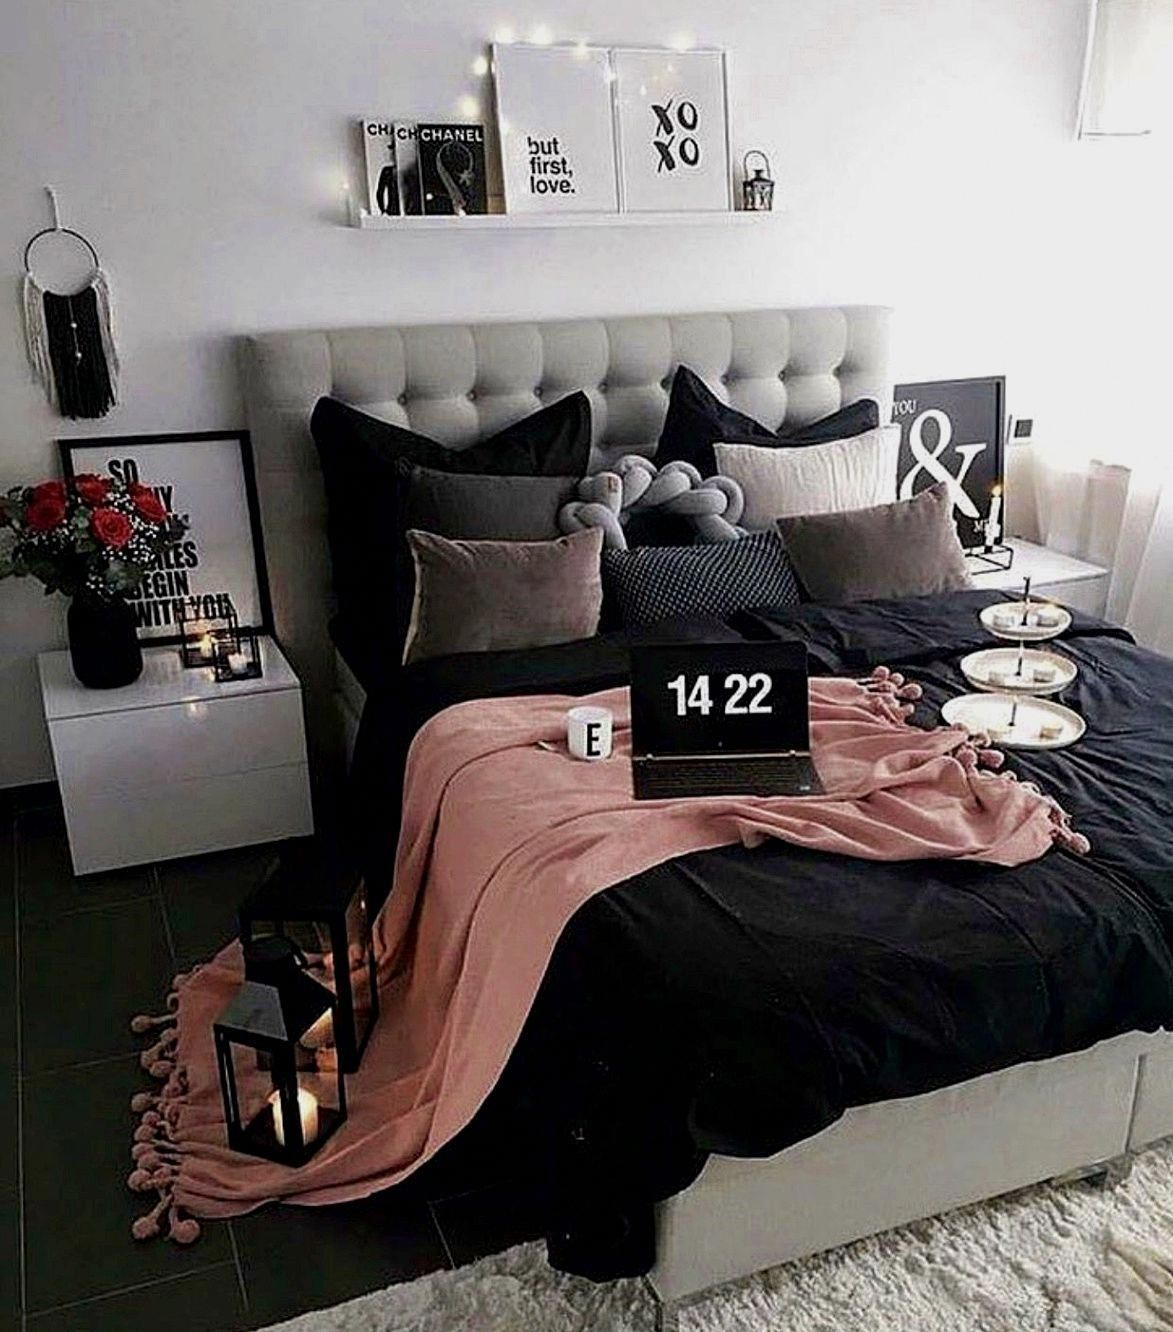 Captivating Bedroom Ideas Positively Lovely Styling Help For Further Imaginative Room Decor Suggestions Simp Bedroom Makeover Bedroom Design Awesome Bedrooms